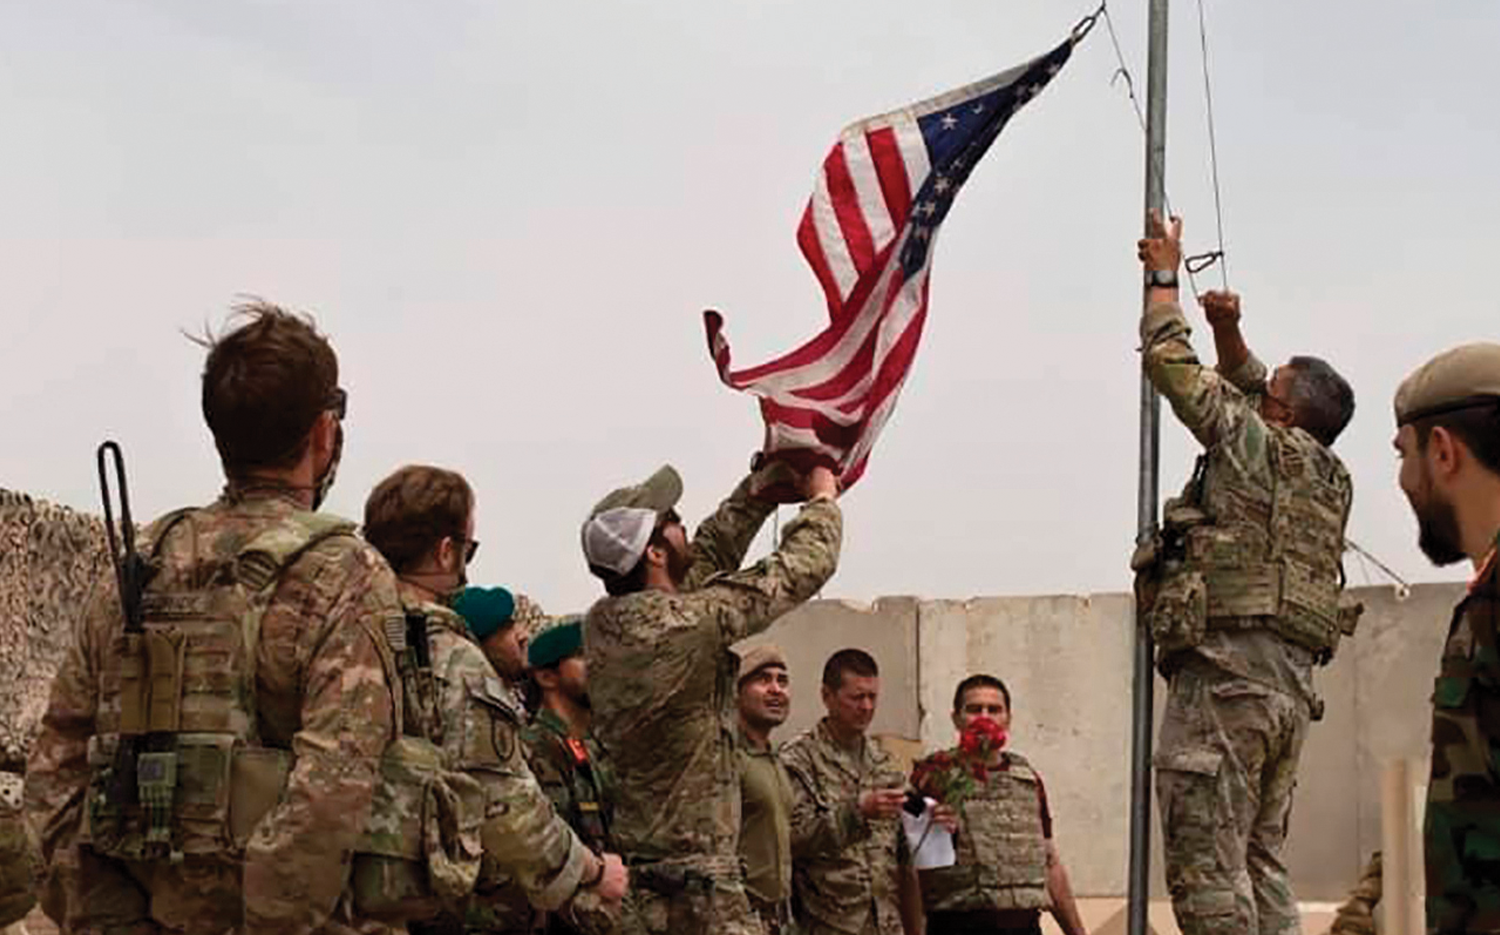 U.S. soldiers lower an American flag at a handover ceremony at Camp Antonik.